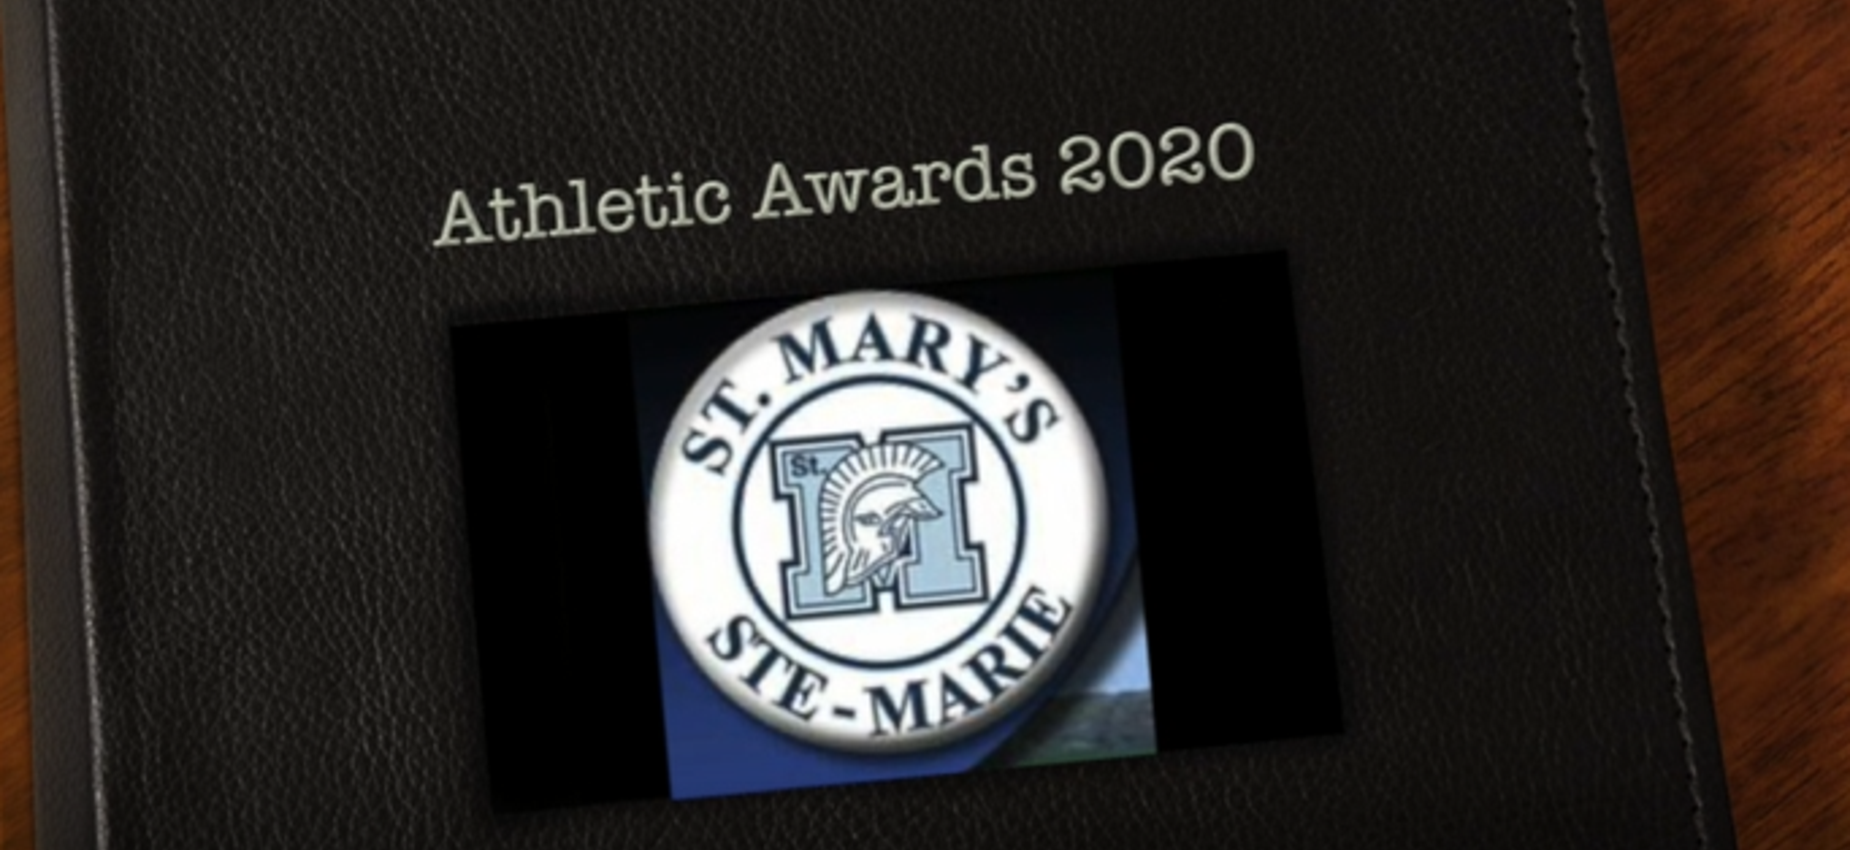 SMHS Athletic Awards Videos 2020